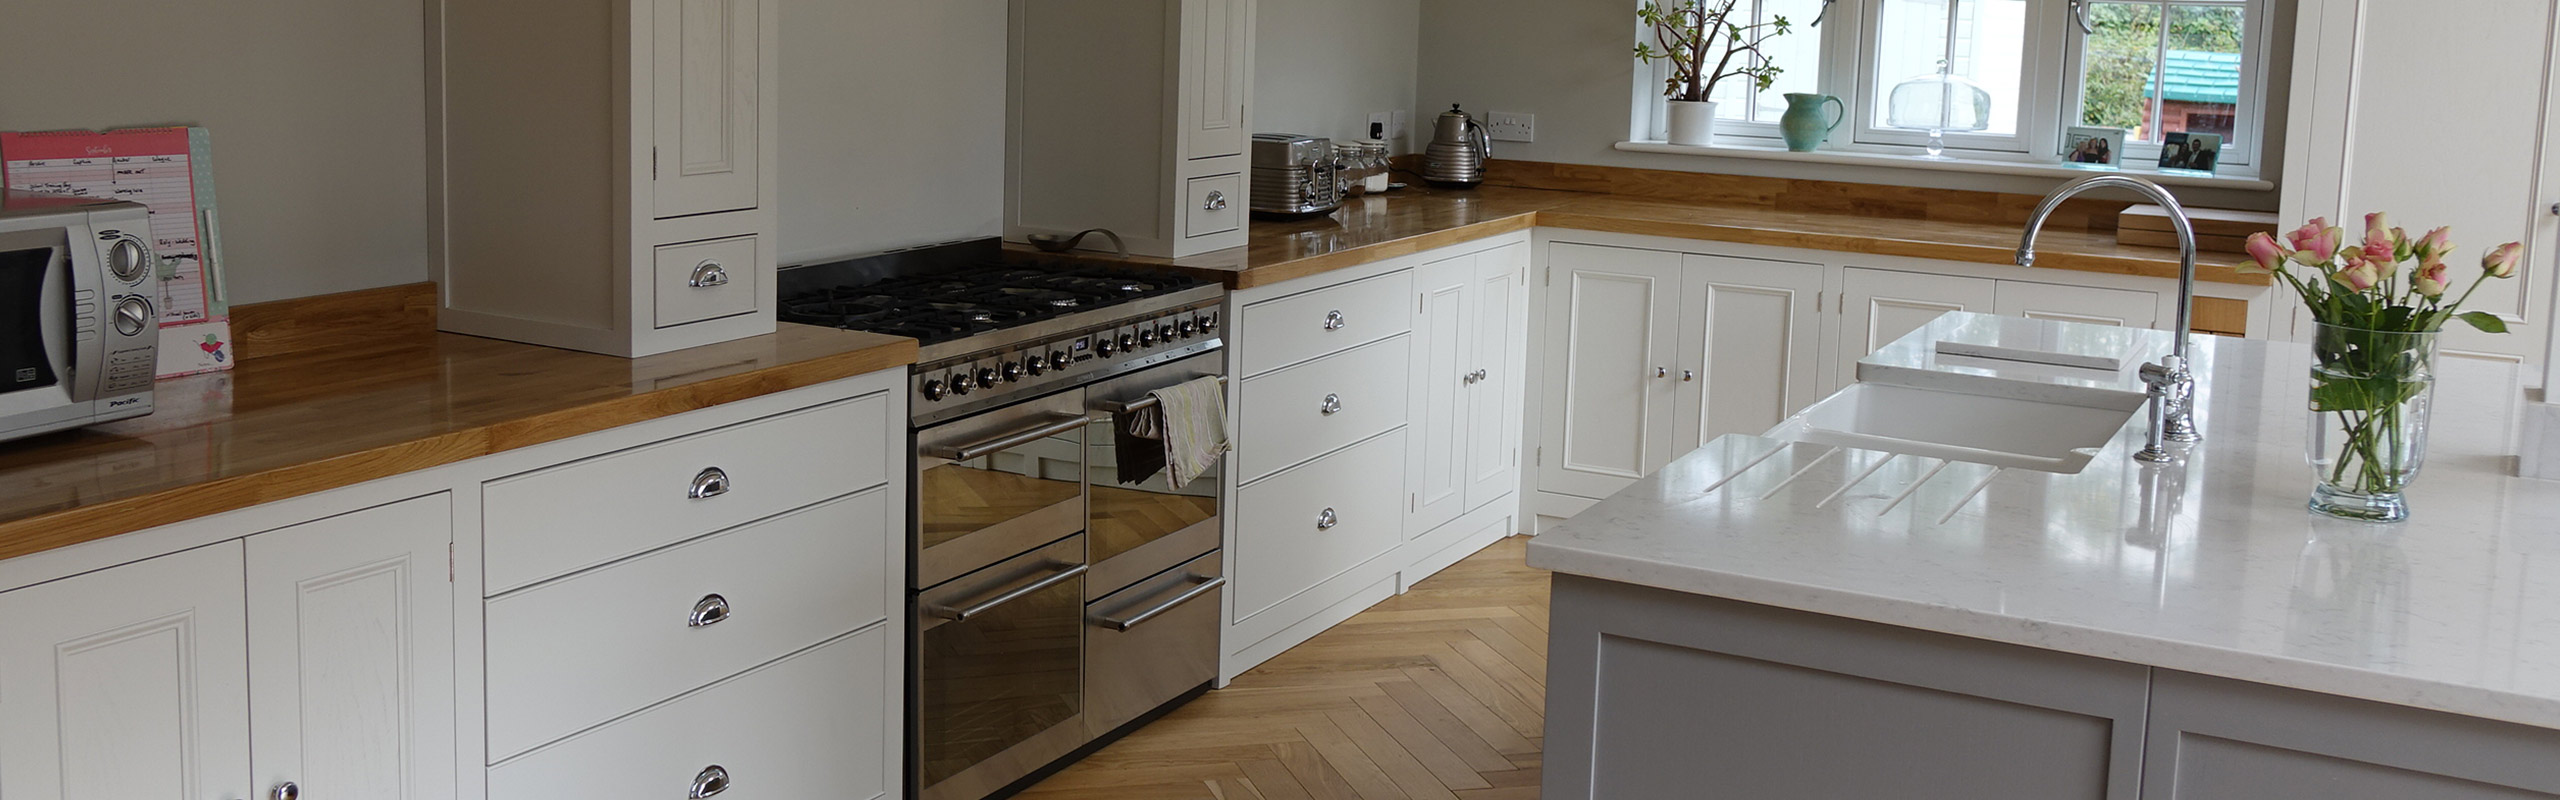 Bespoke Kitchens Norfolk